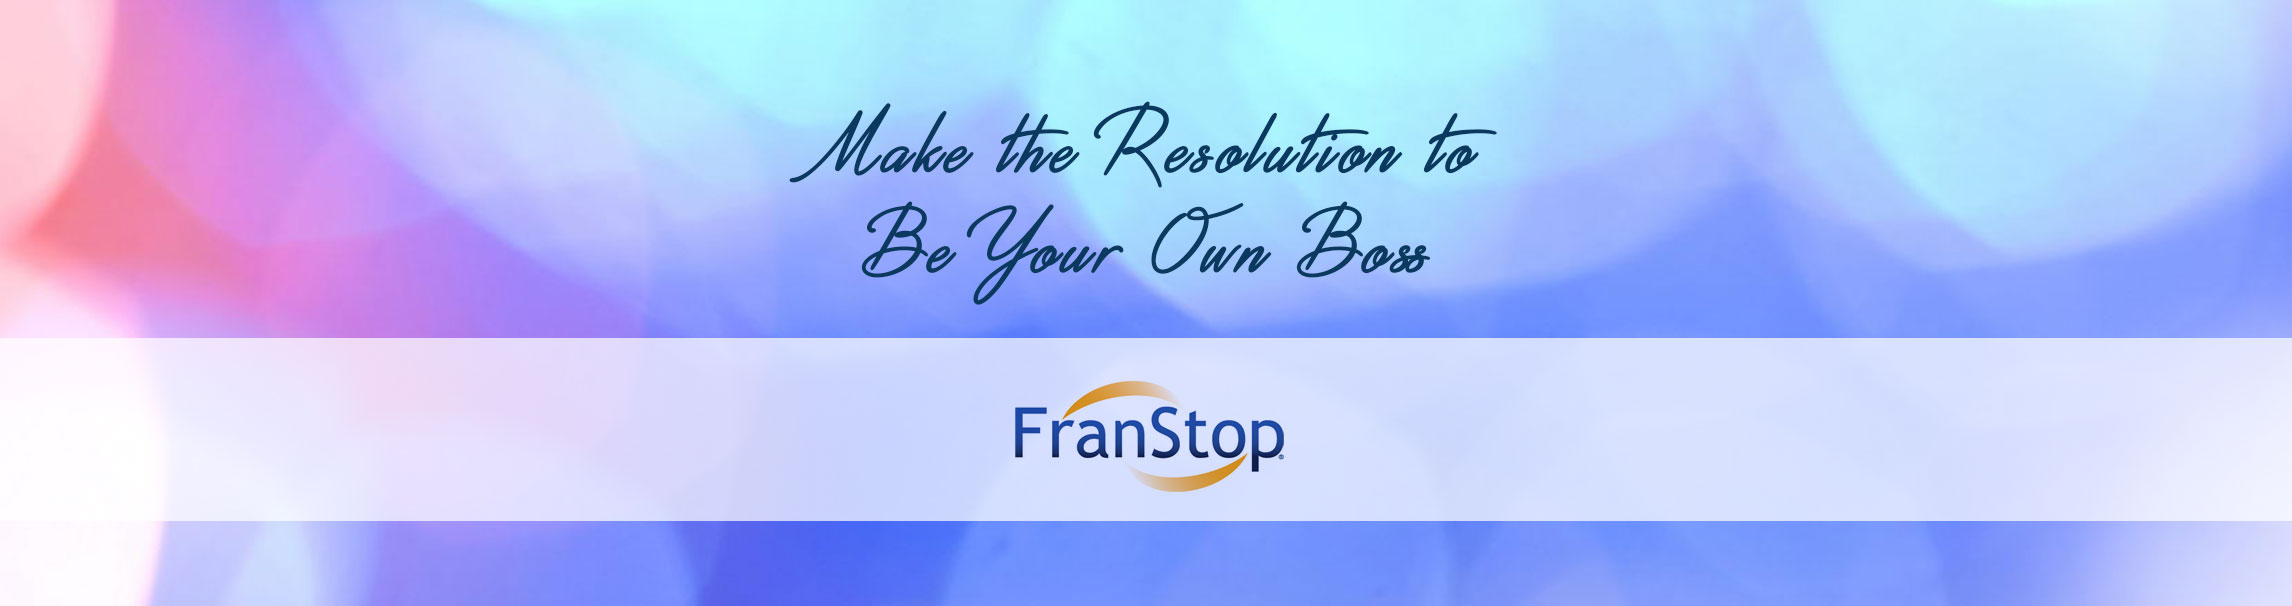 Franchising_Franchise_FranStop_Be_Your_Own_Boss_Buy_Franchising_Financing_FranStop